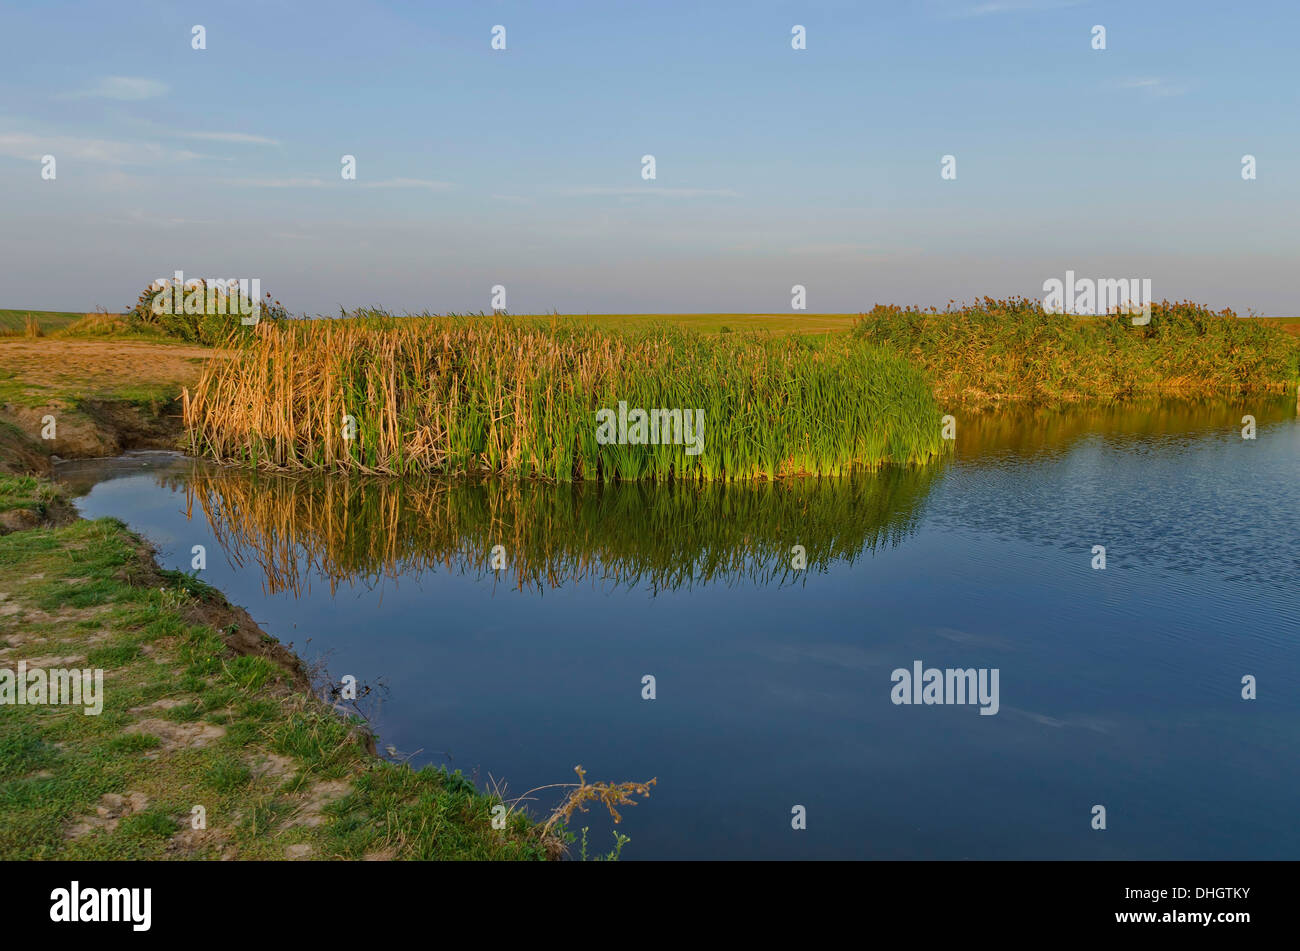 Small pond in the field for irrigation - Stock Image